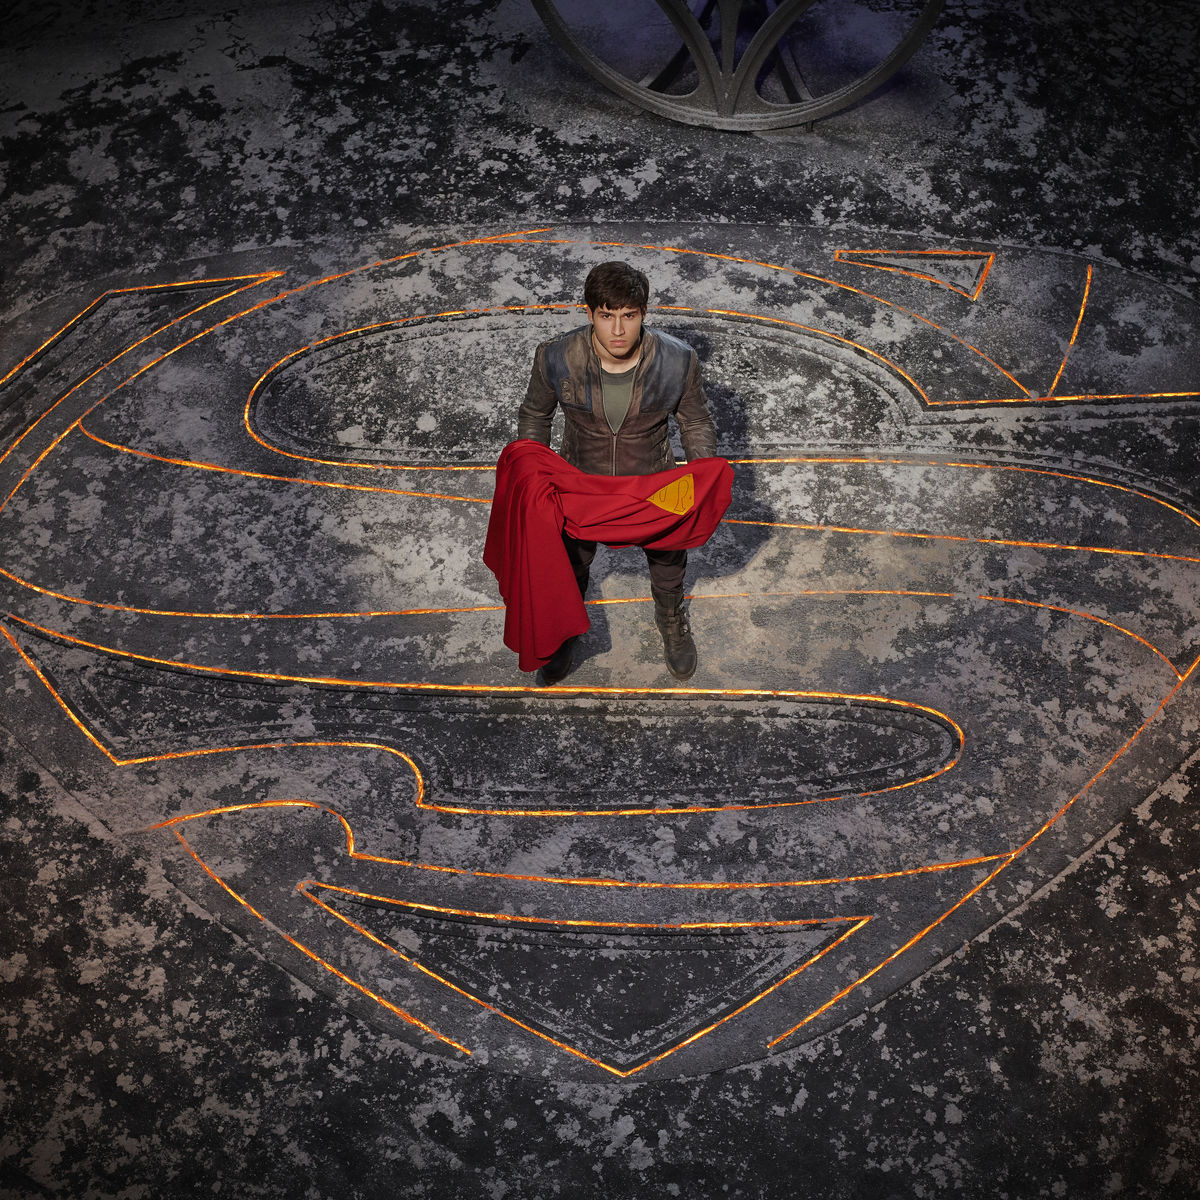 Krypton insignia, cape